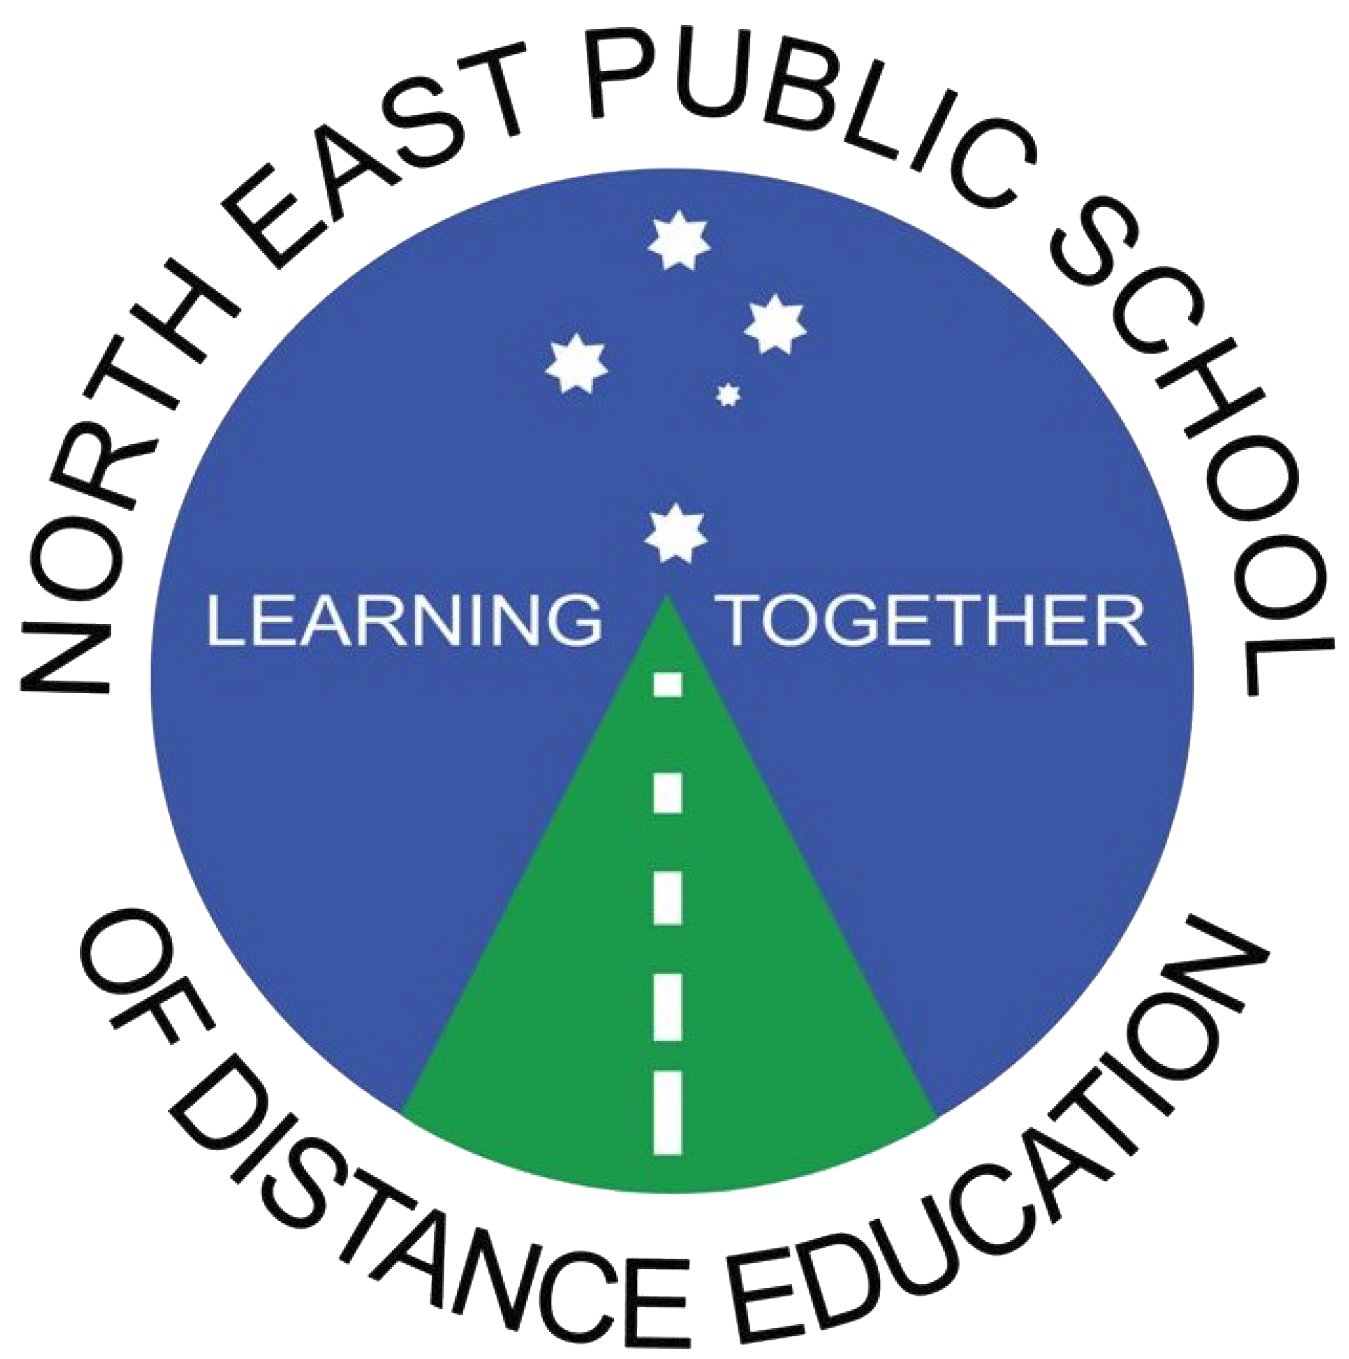 North East Public School of Distance Education logo